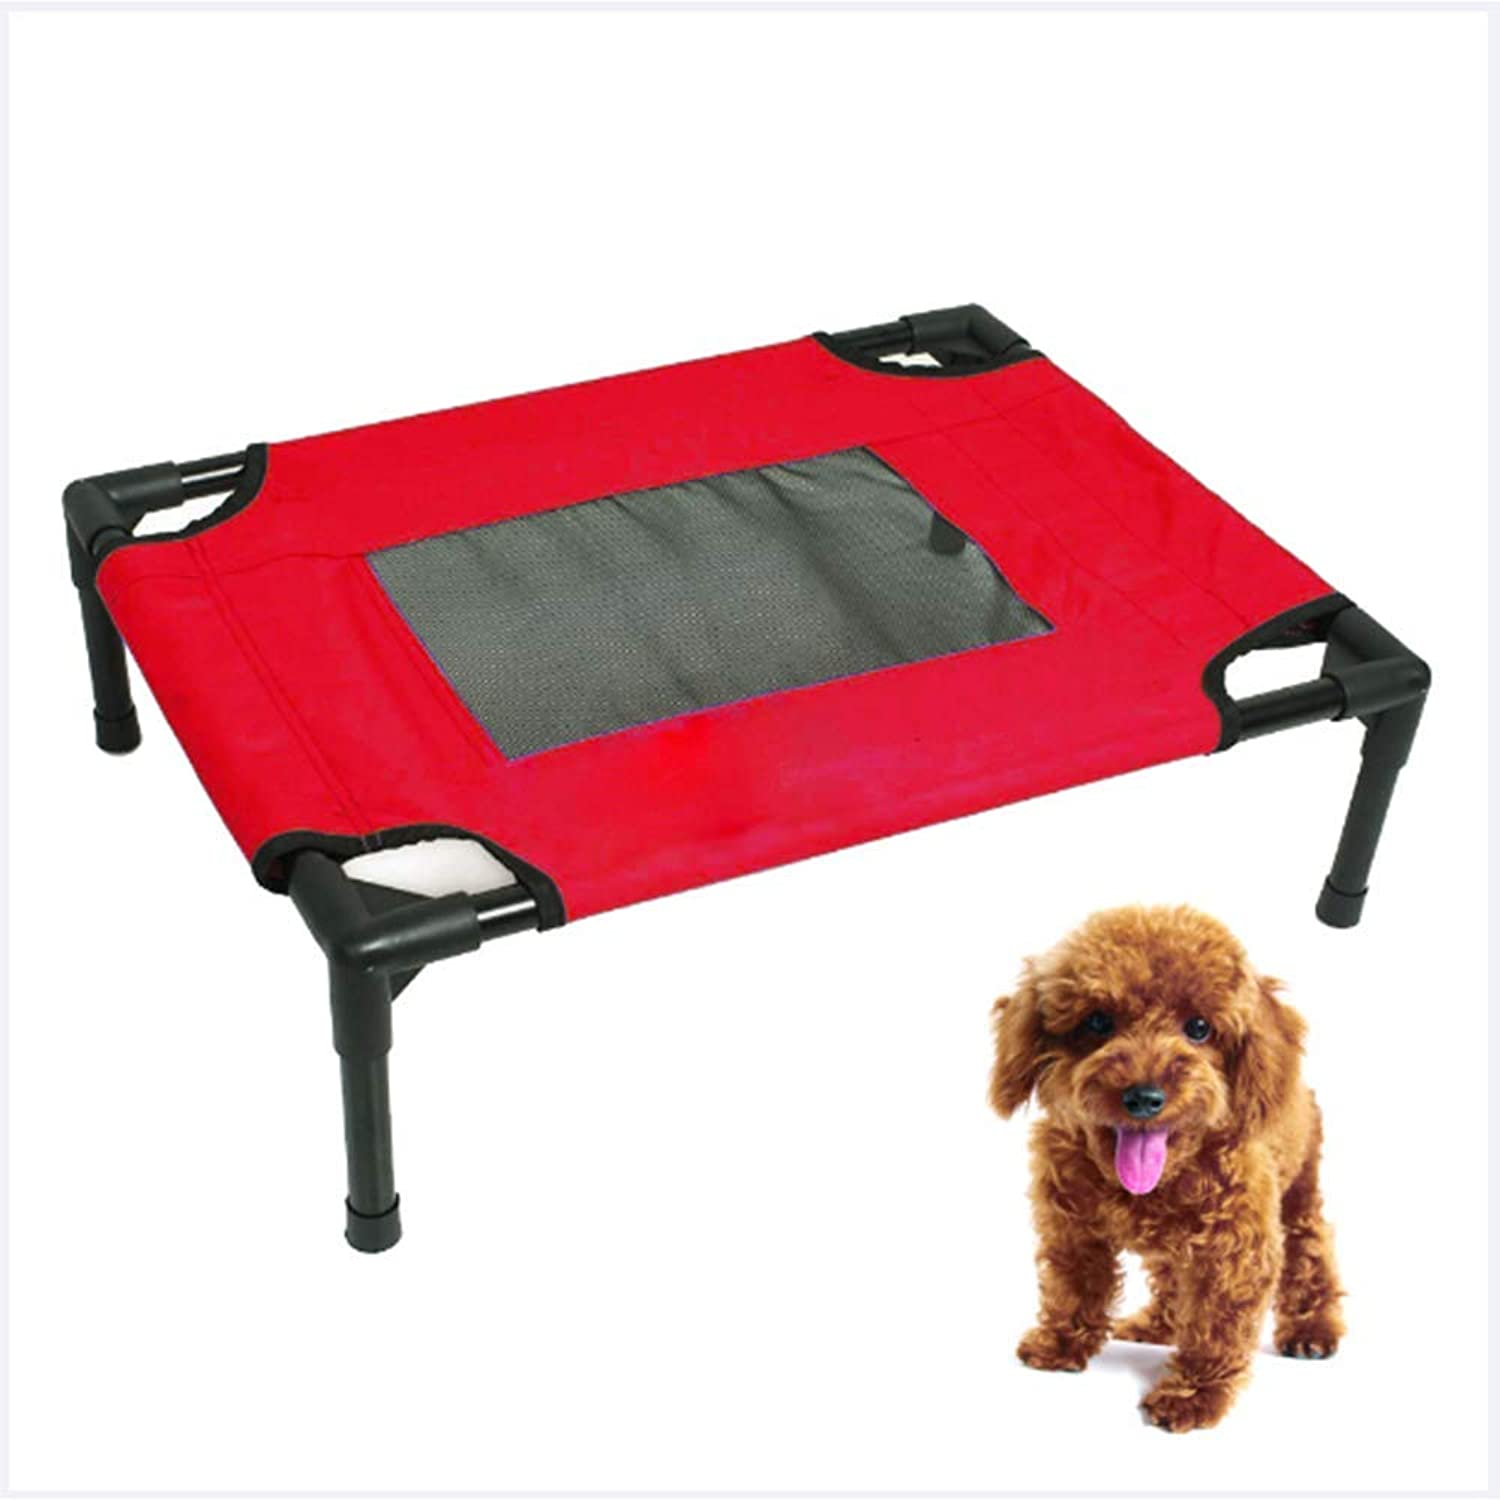 Elevated Dog Bed Comfortable for Any Dog More hygienic Than Padded beds Portable Camping Bed with net,Sturdy Frame Waterproof,Red,76  60  16CM